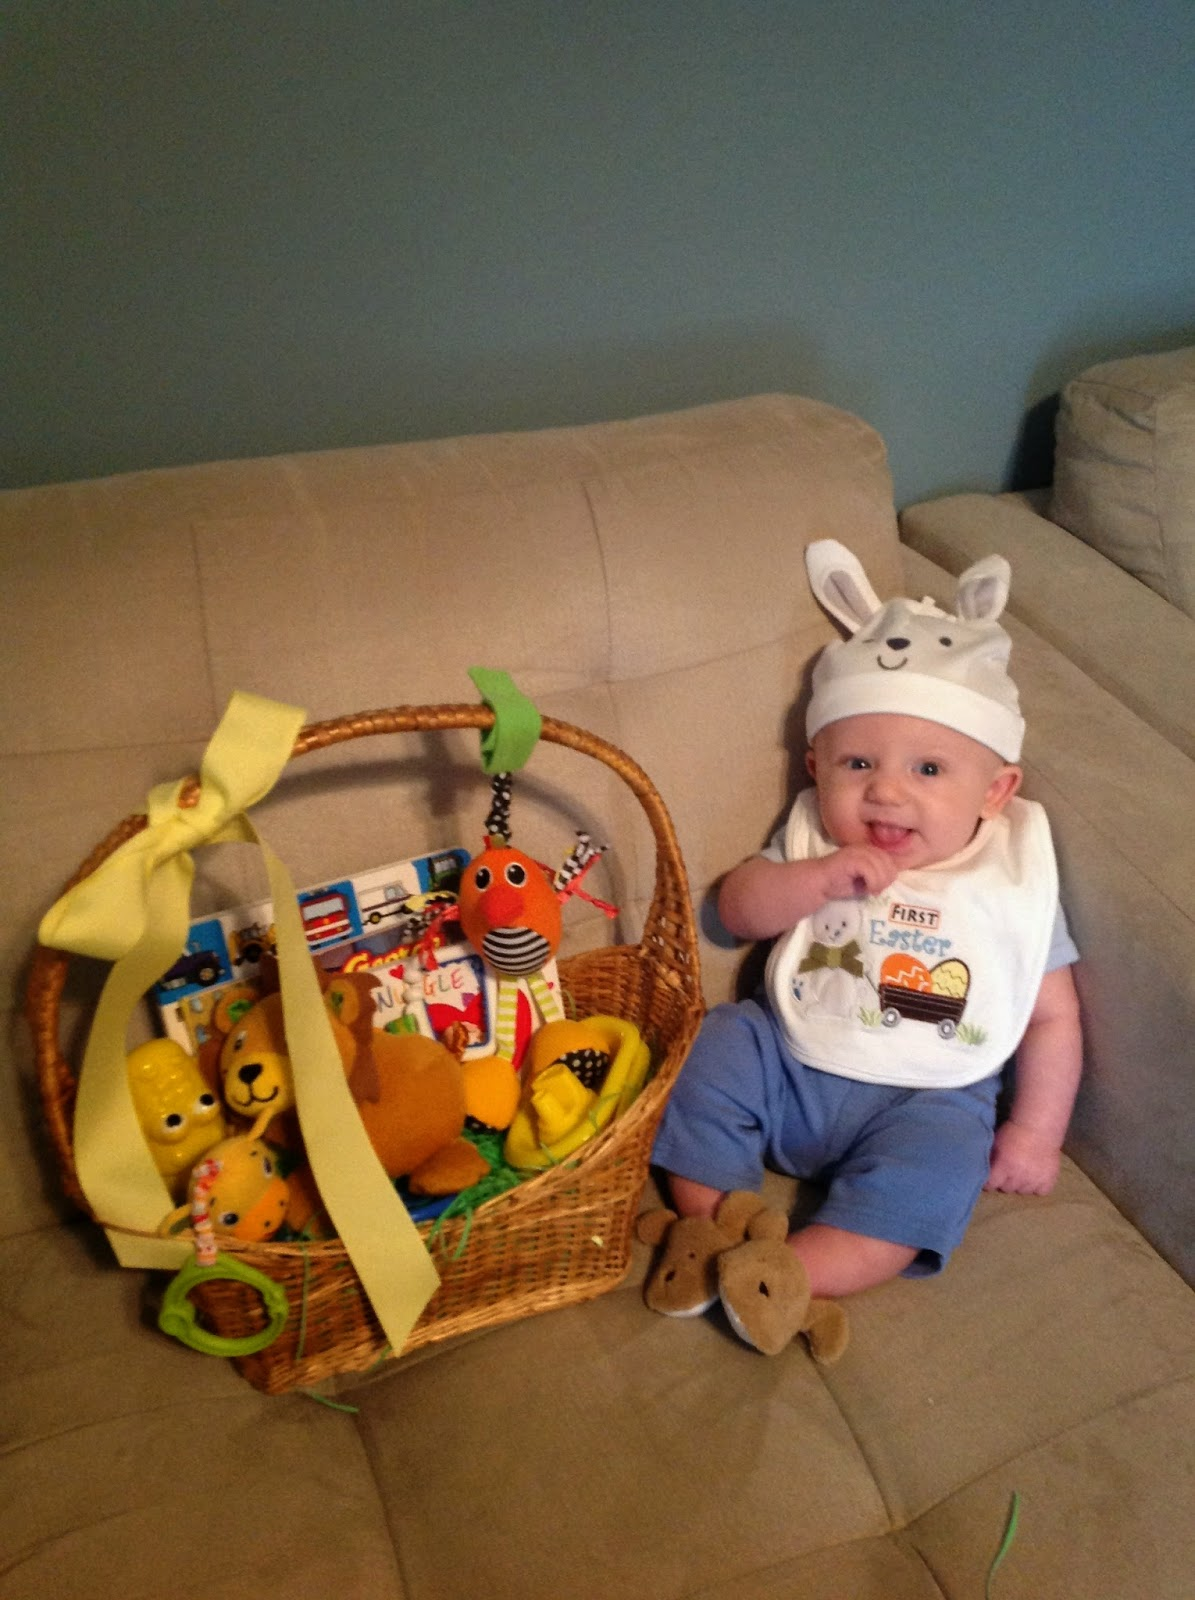 Does Grandma pussy easter basket sorry